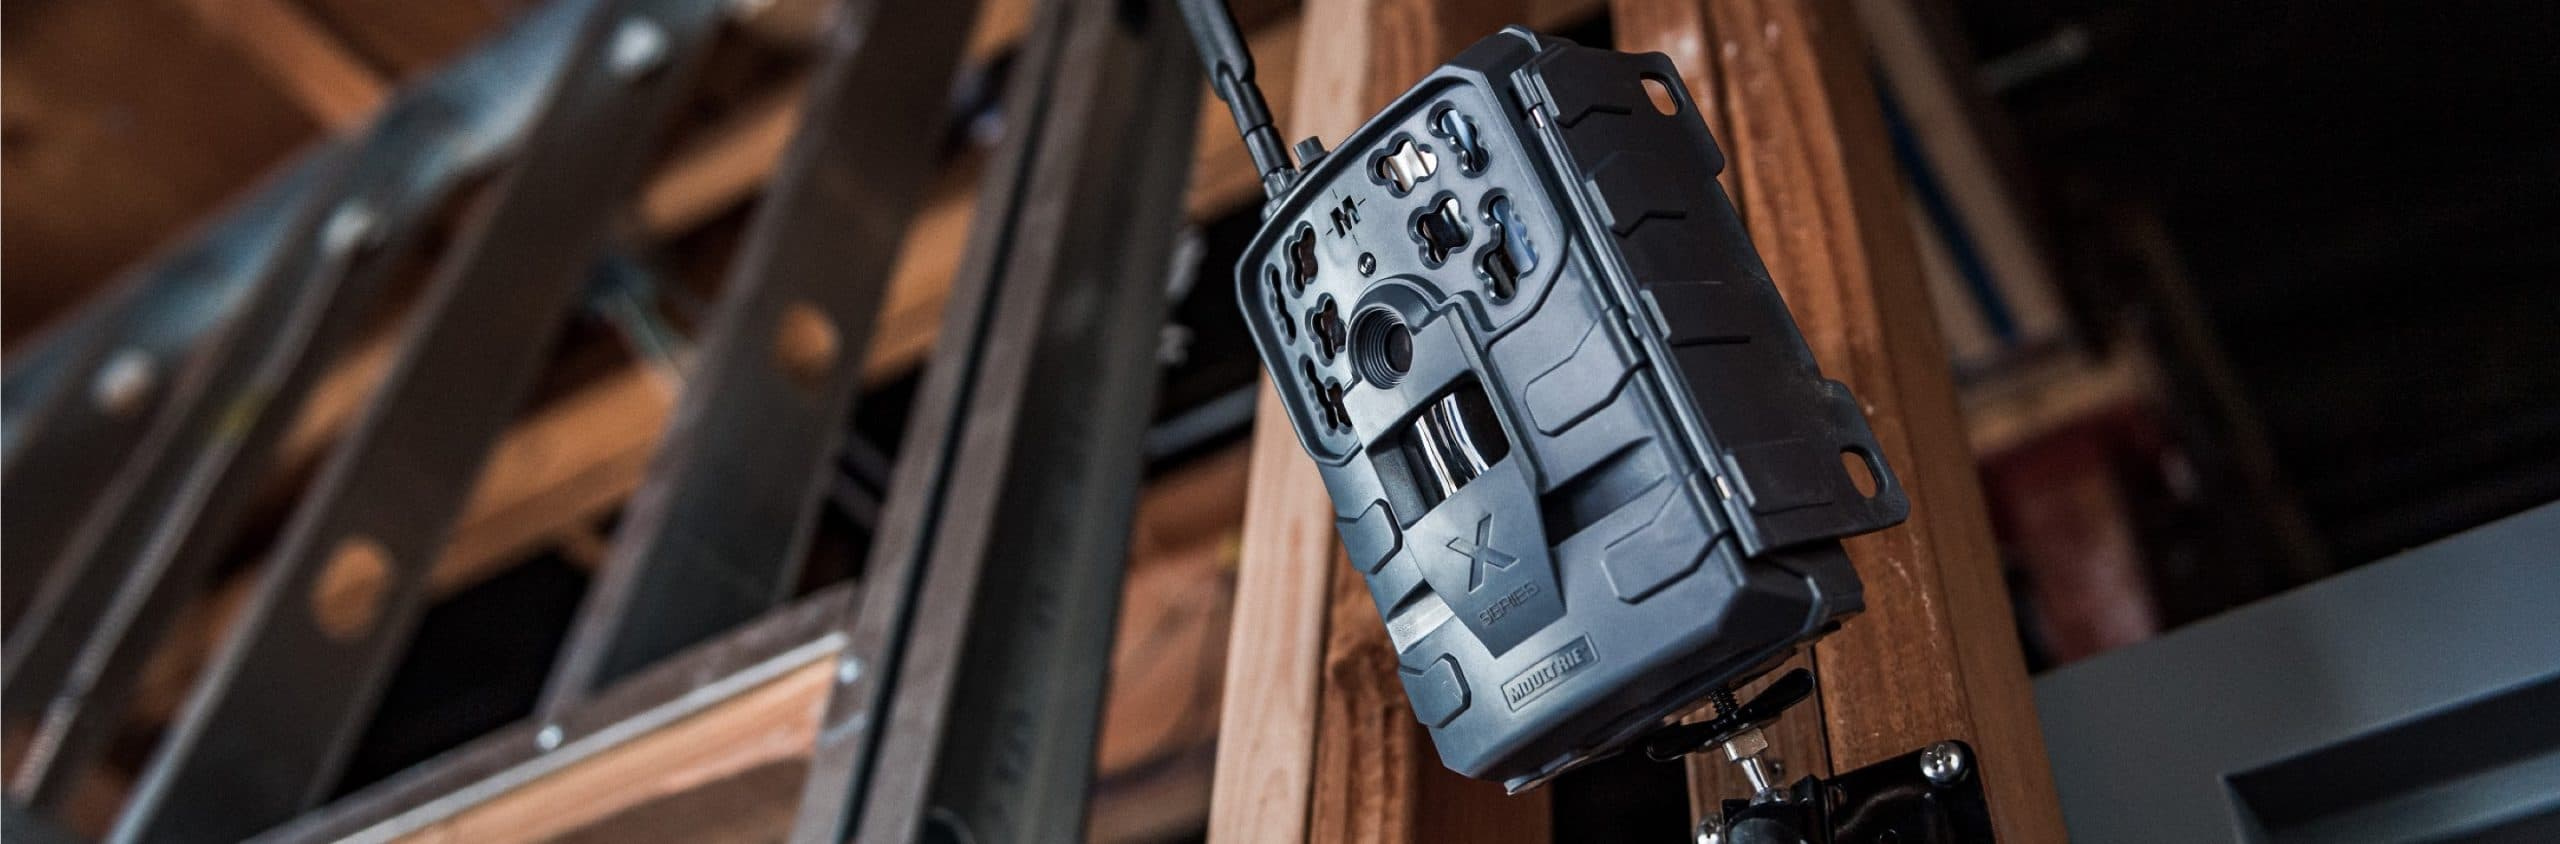 Moultrie Cellular Trail Camera posted on beam for security